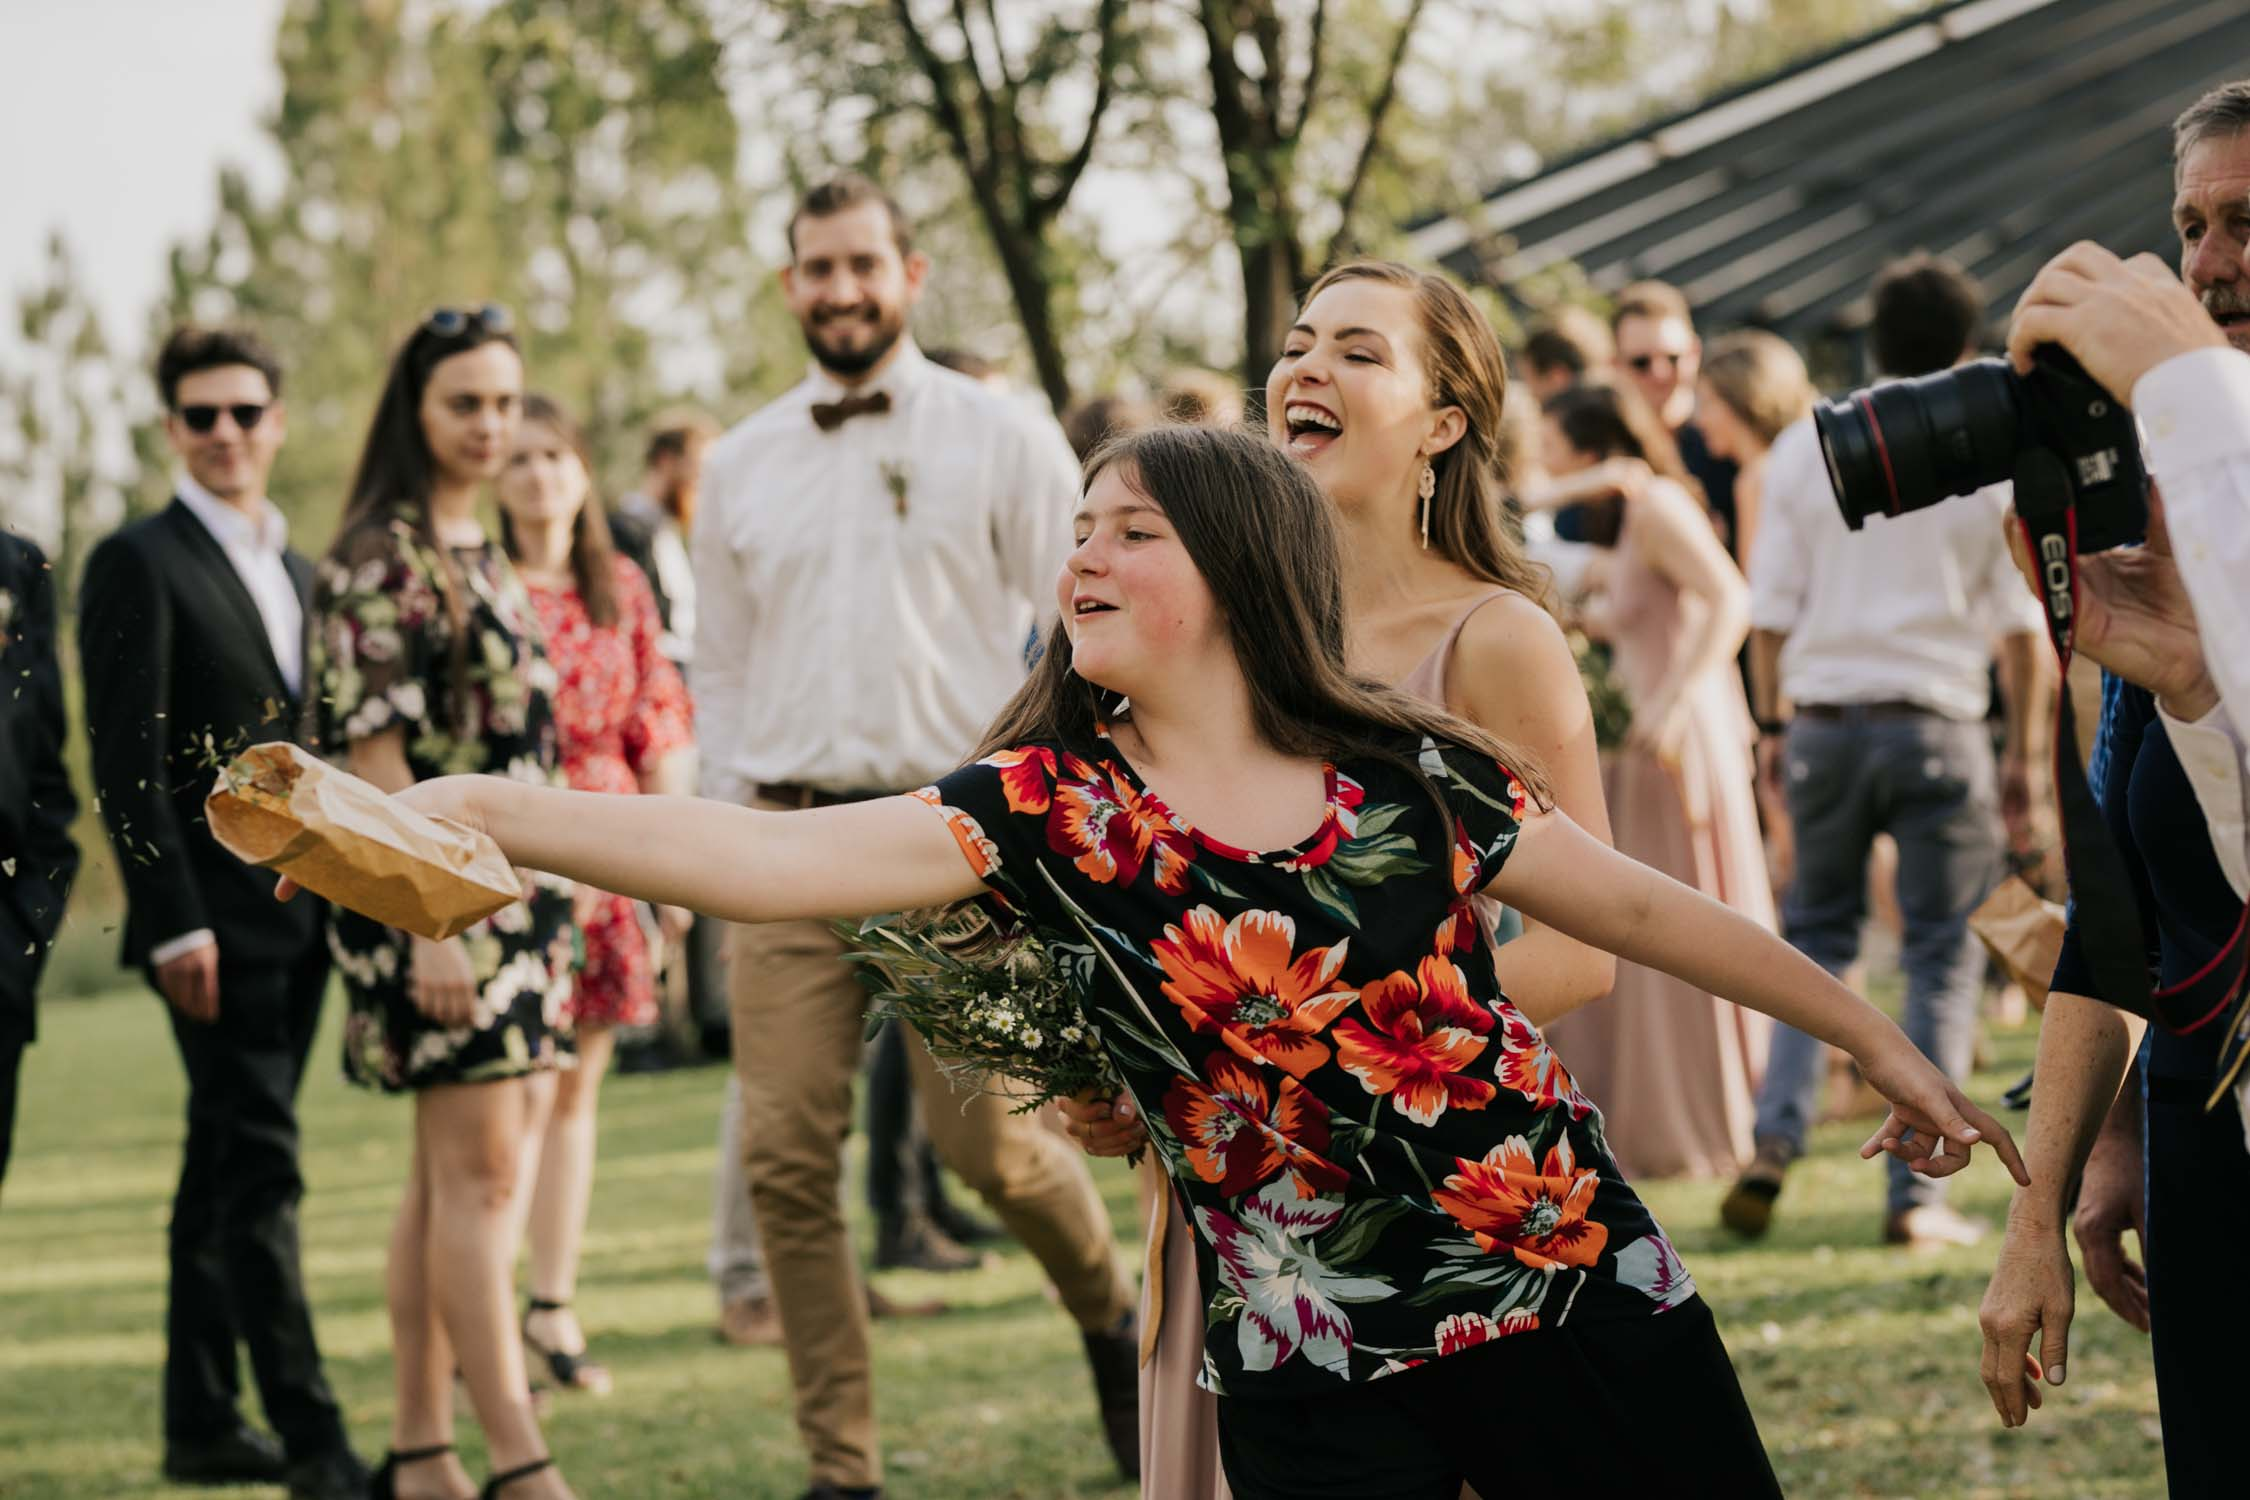 Cute photo of girl throwing confetti at newly married couple